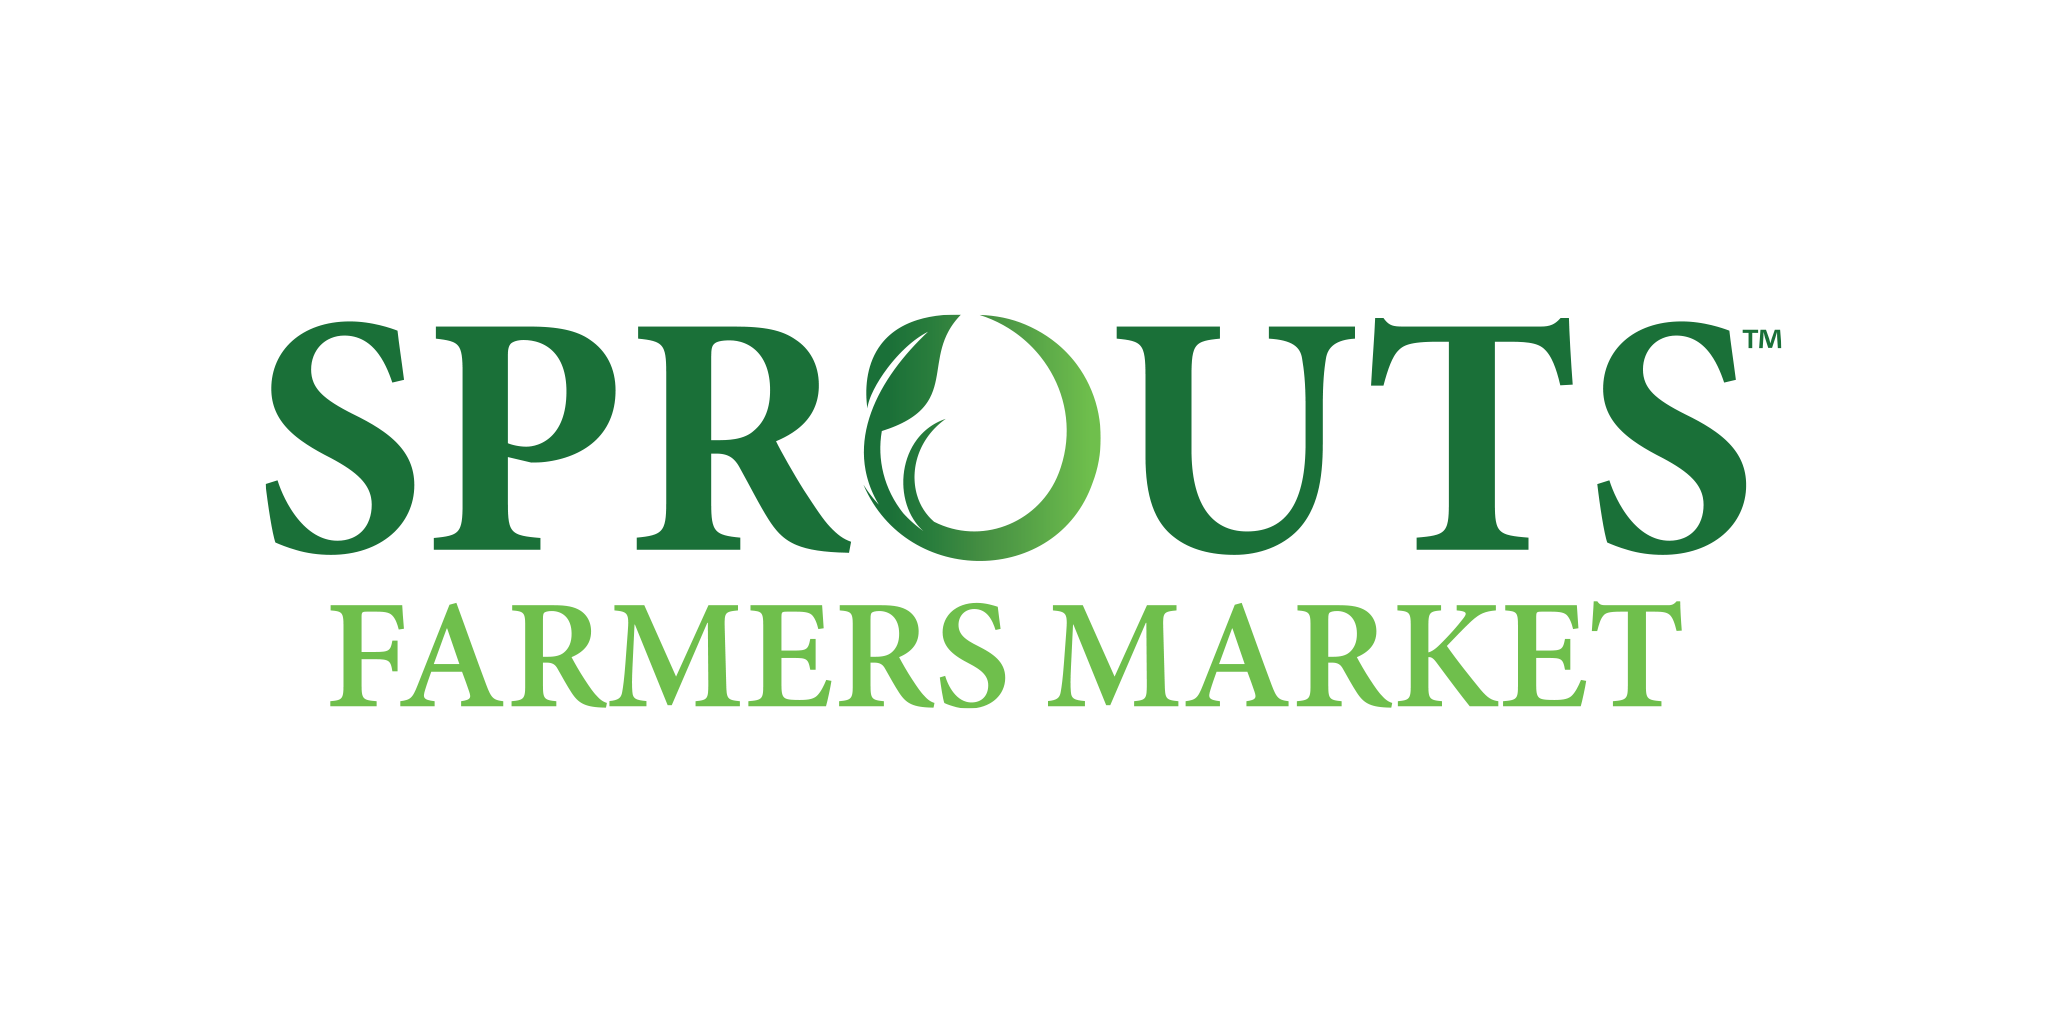 Where to Buy/Ralston-Family-Farms-Grocers-sprouts-farmers-market-logo.png